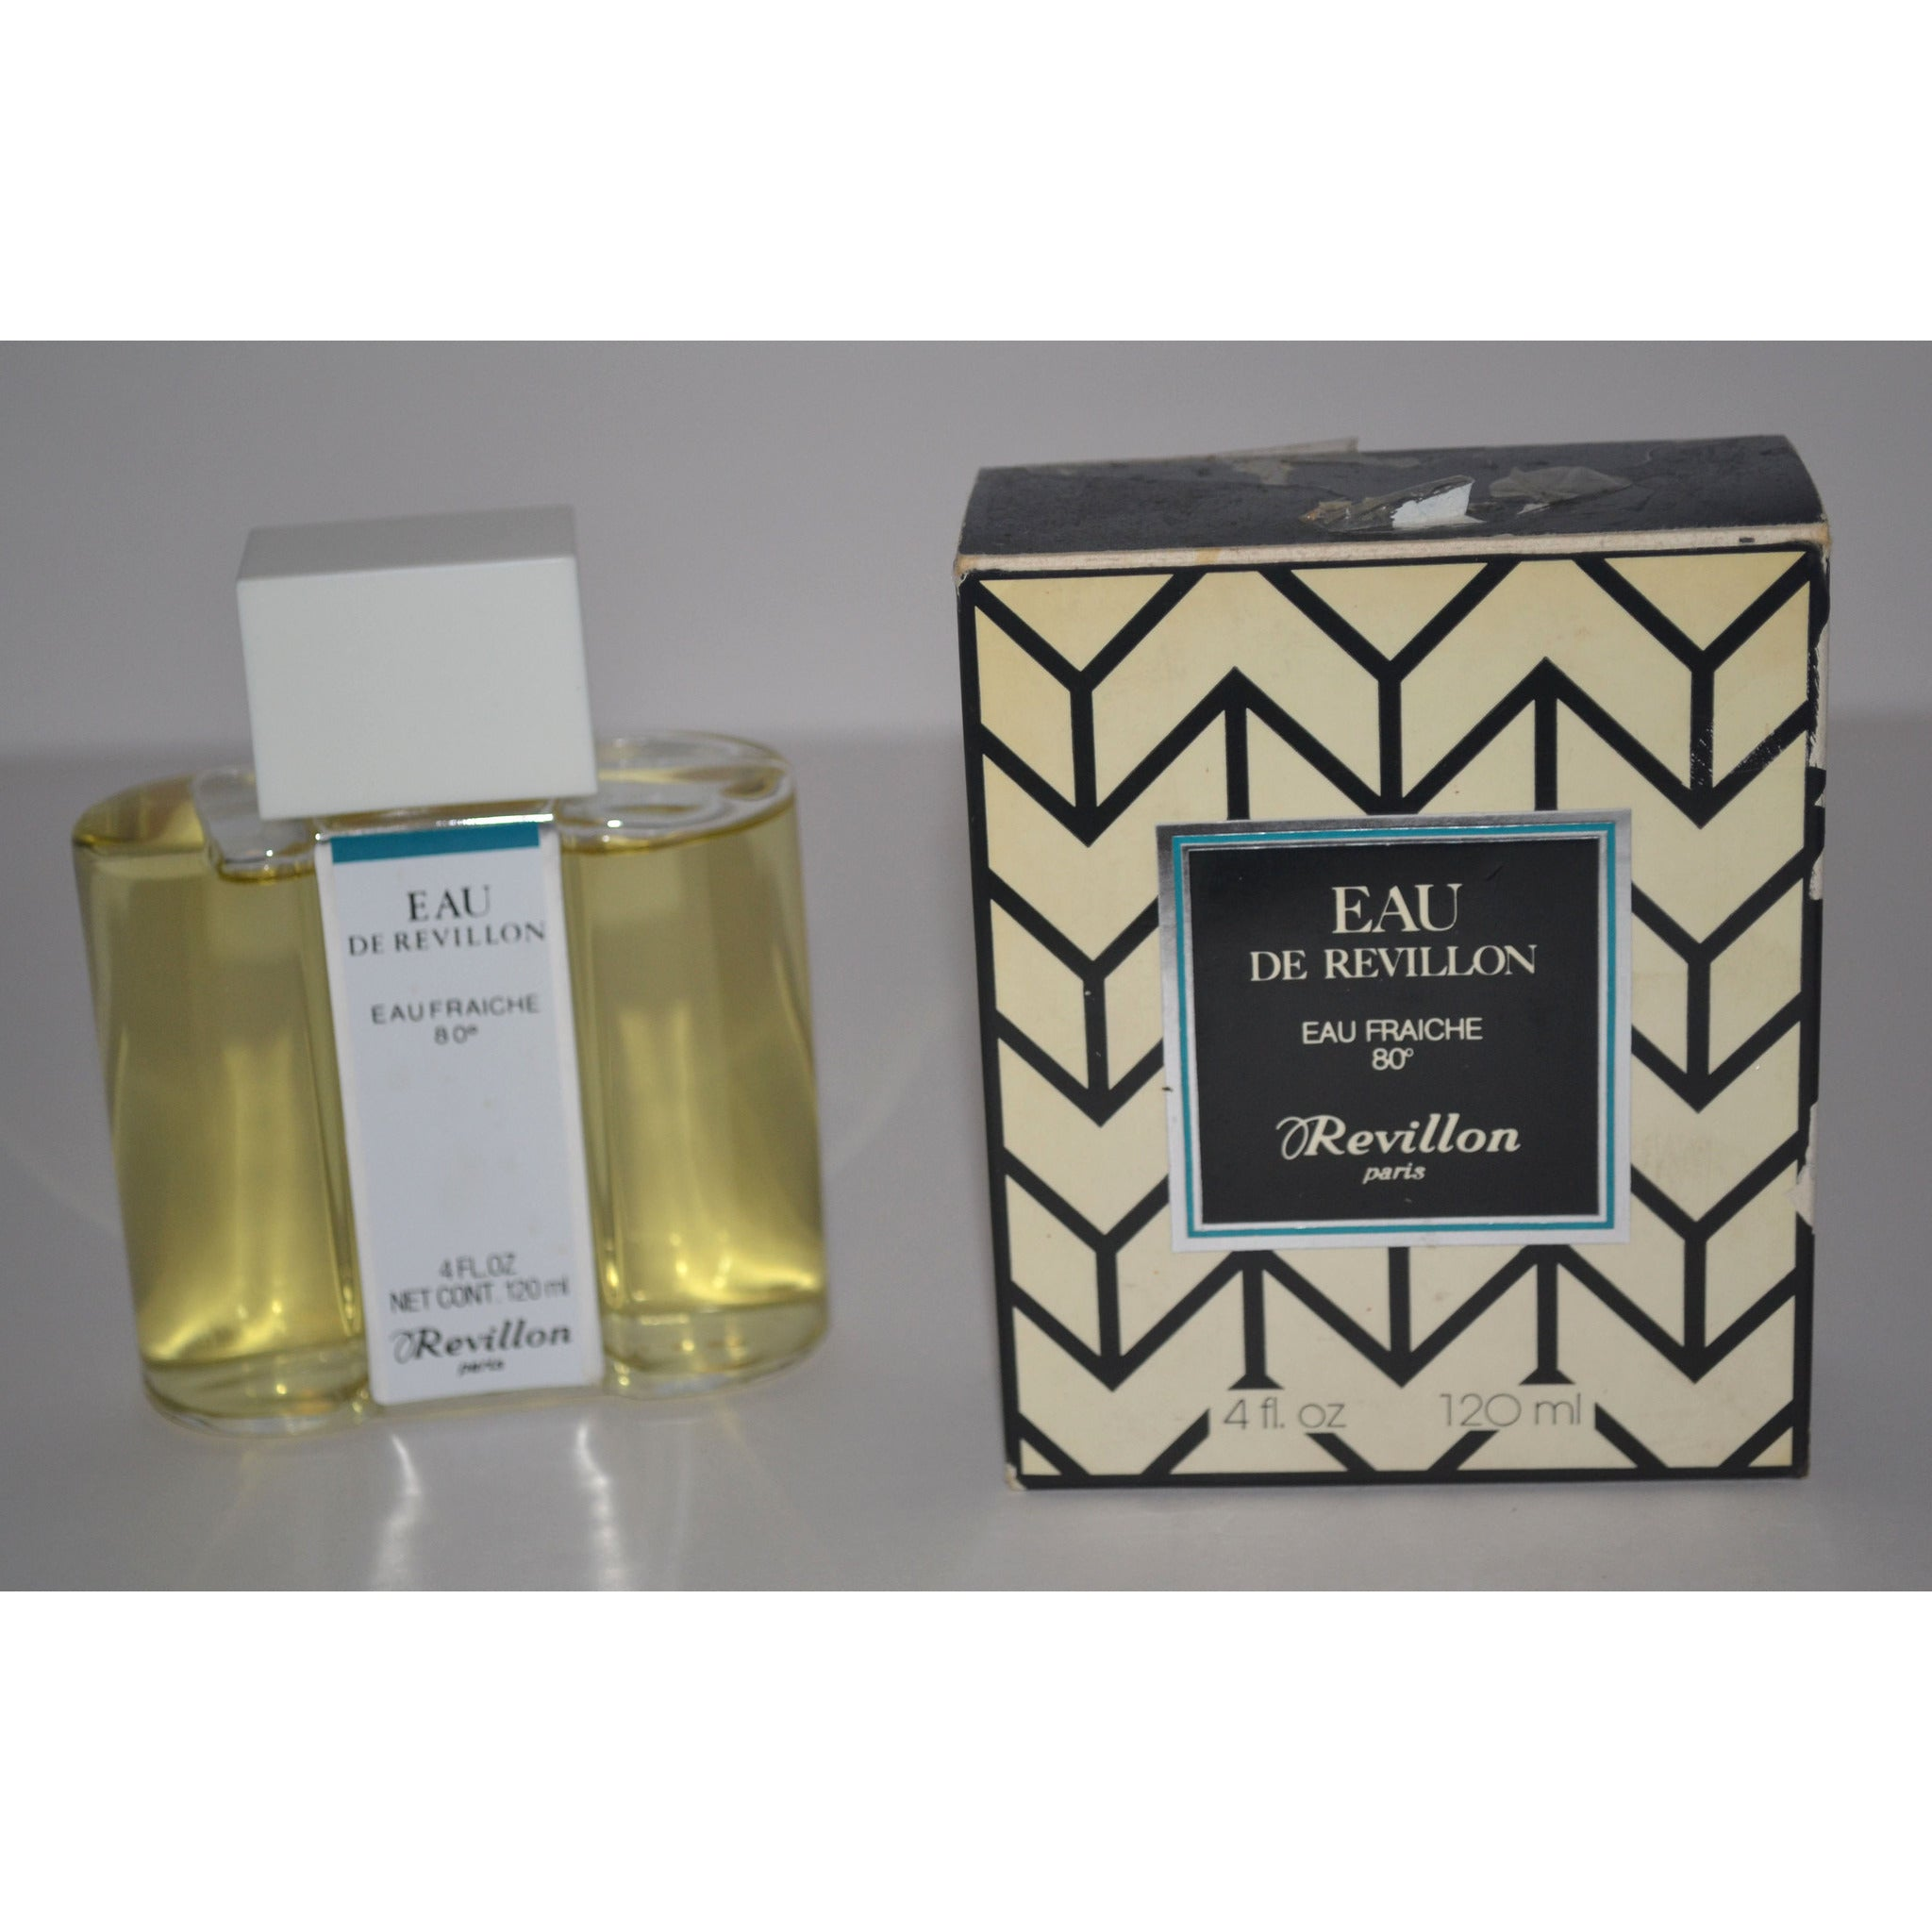 Vintage Eau De Revillon Eau Fraiche By Revillon